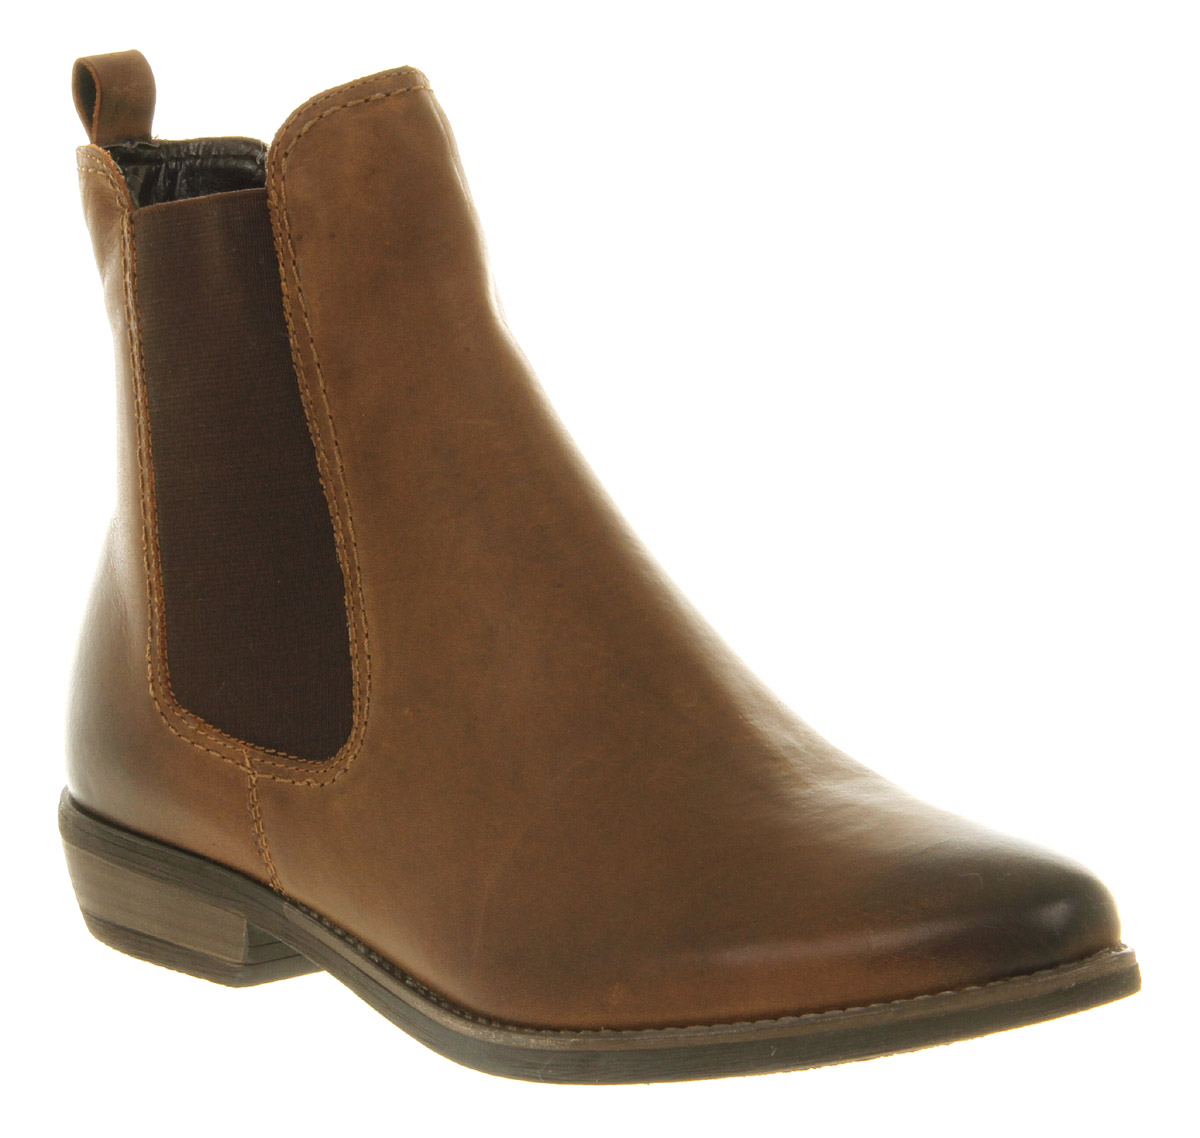 brown leather boots image is loading womens-office-girl-dallas-chelsea-boot-brown-leather- ZHQQLAO